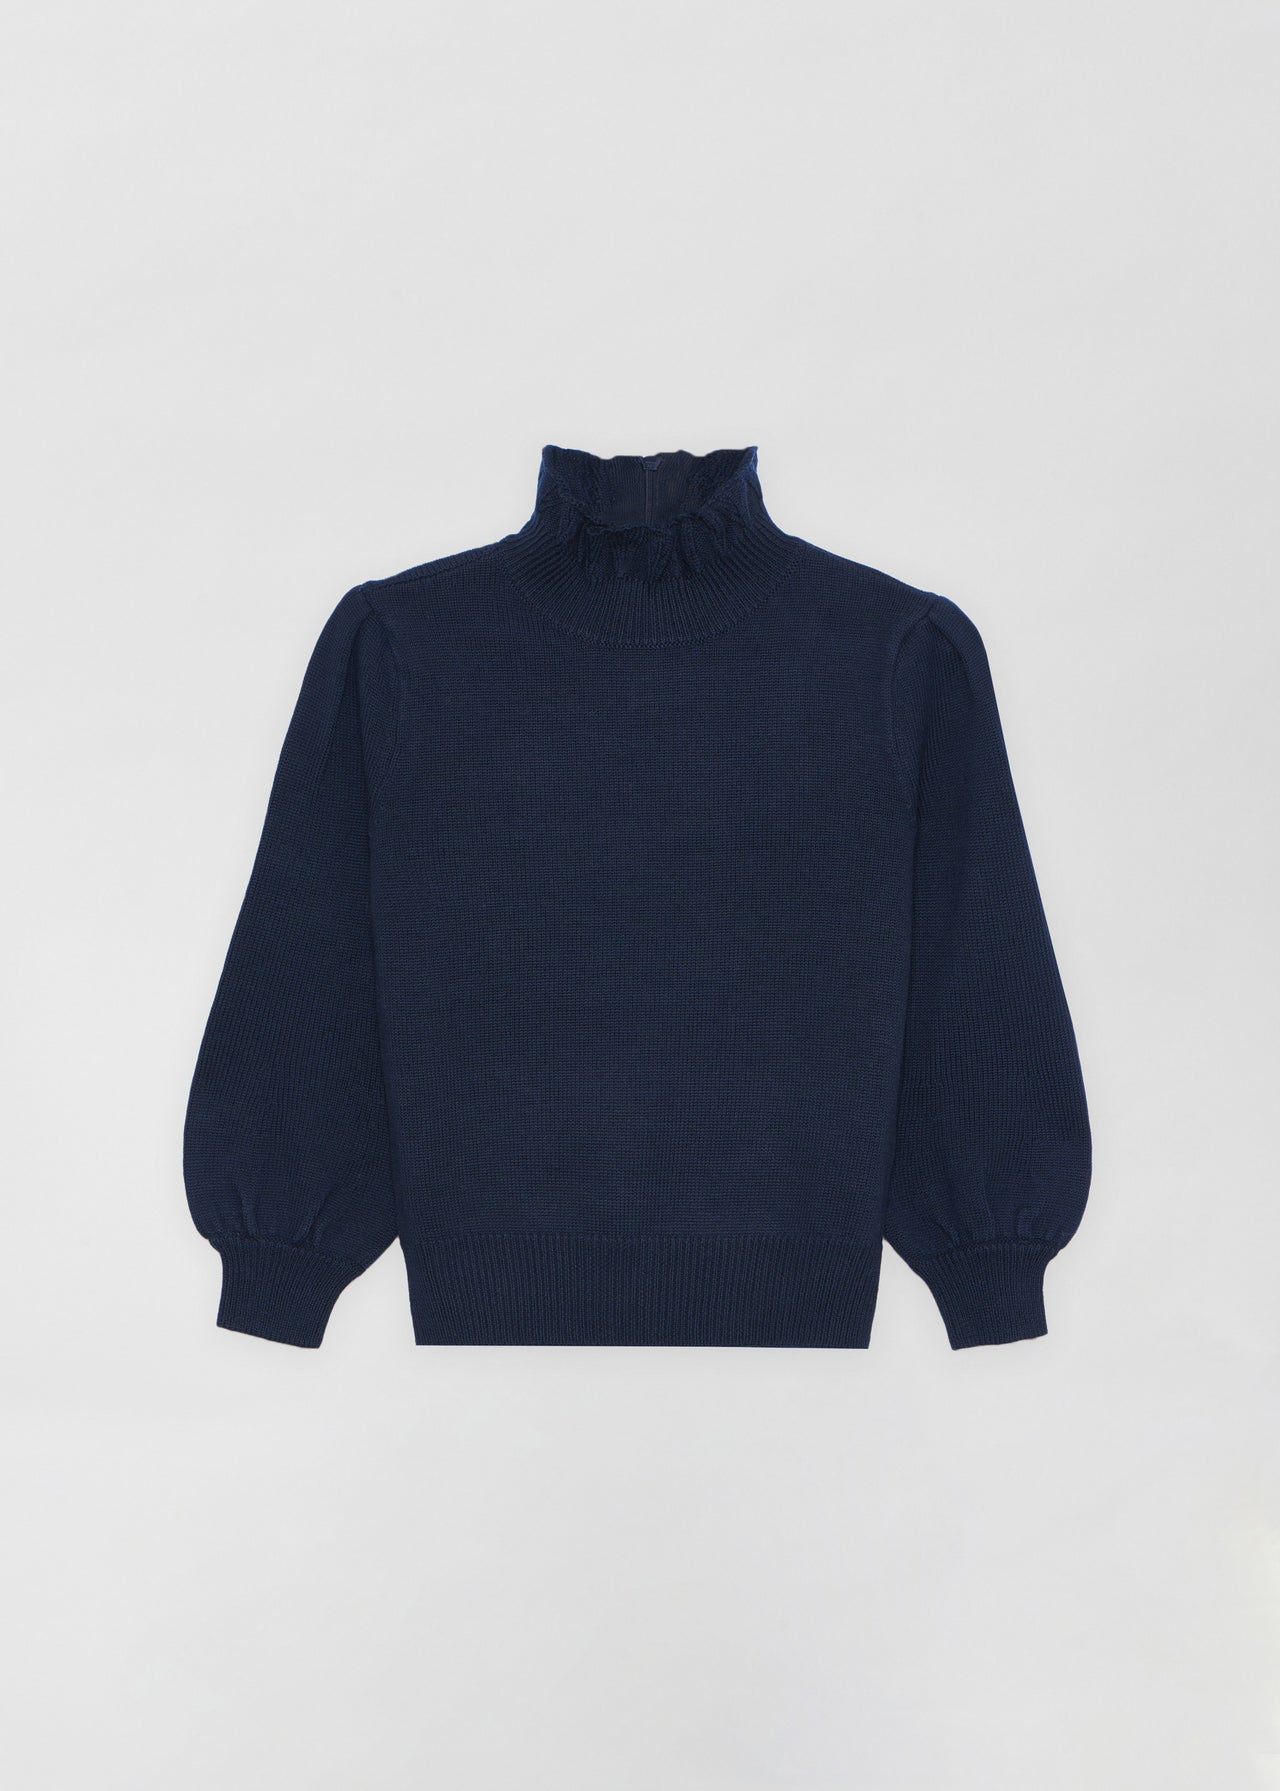 Ruffled Merino Wool Turtleneck - Navy